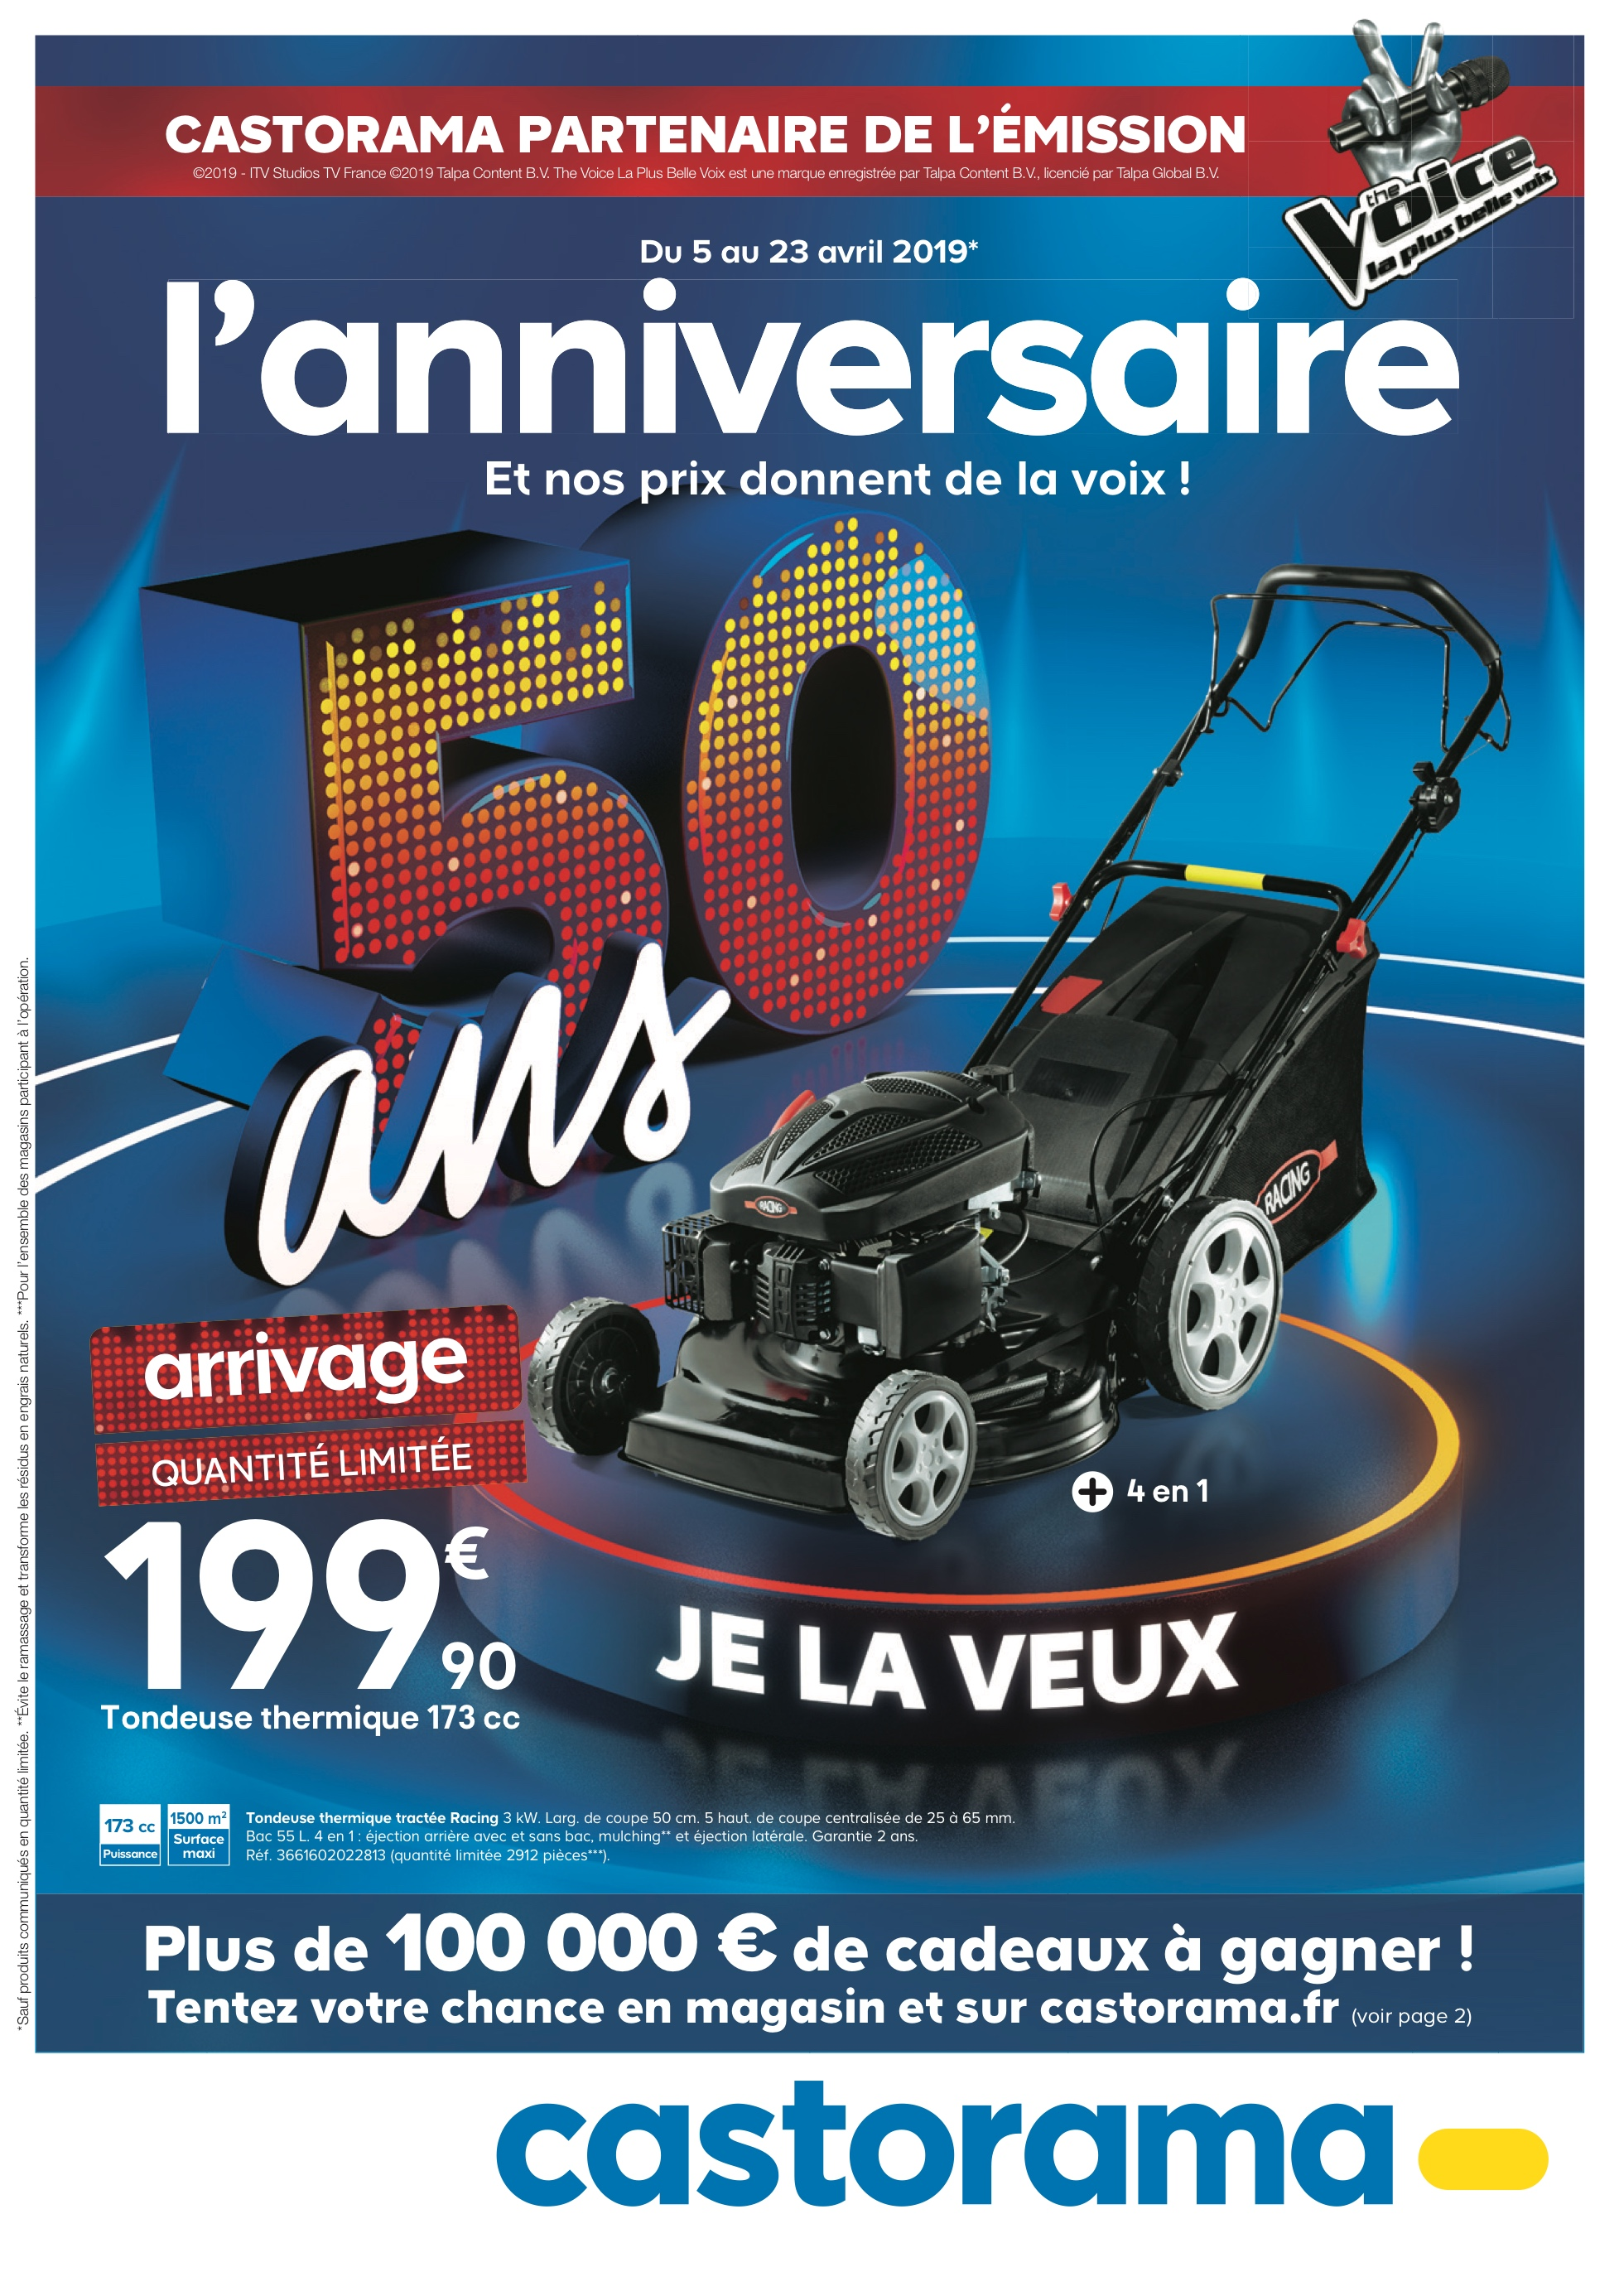 Castorama Chaise De Plage anniversaire-1_2019 pages 1 - 32 - text version | anyflip